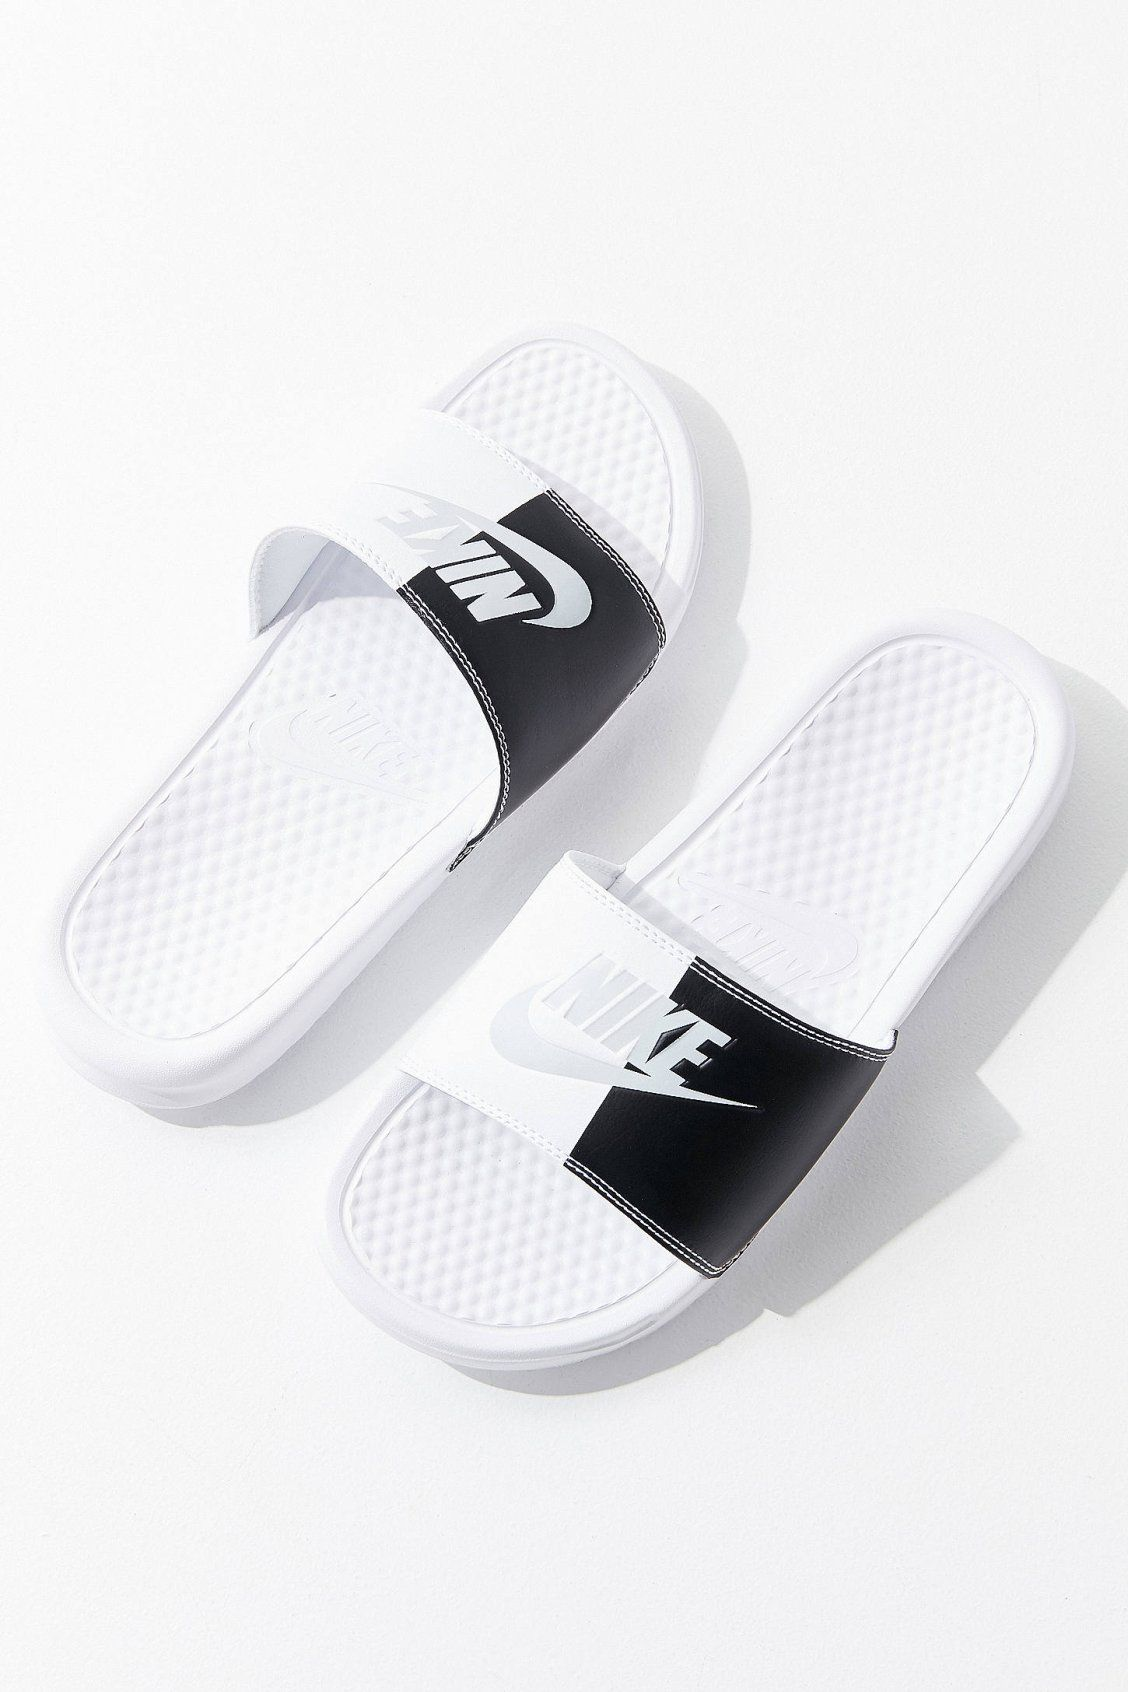 los angeles db81b c0801 Nike Benassi JDI Colorblock Slide   Urban Outfitters